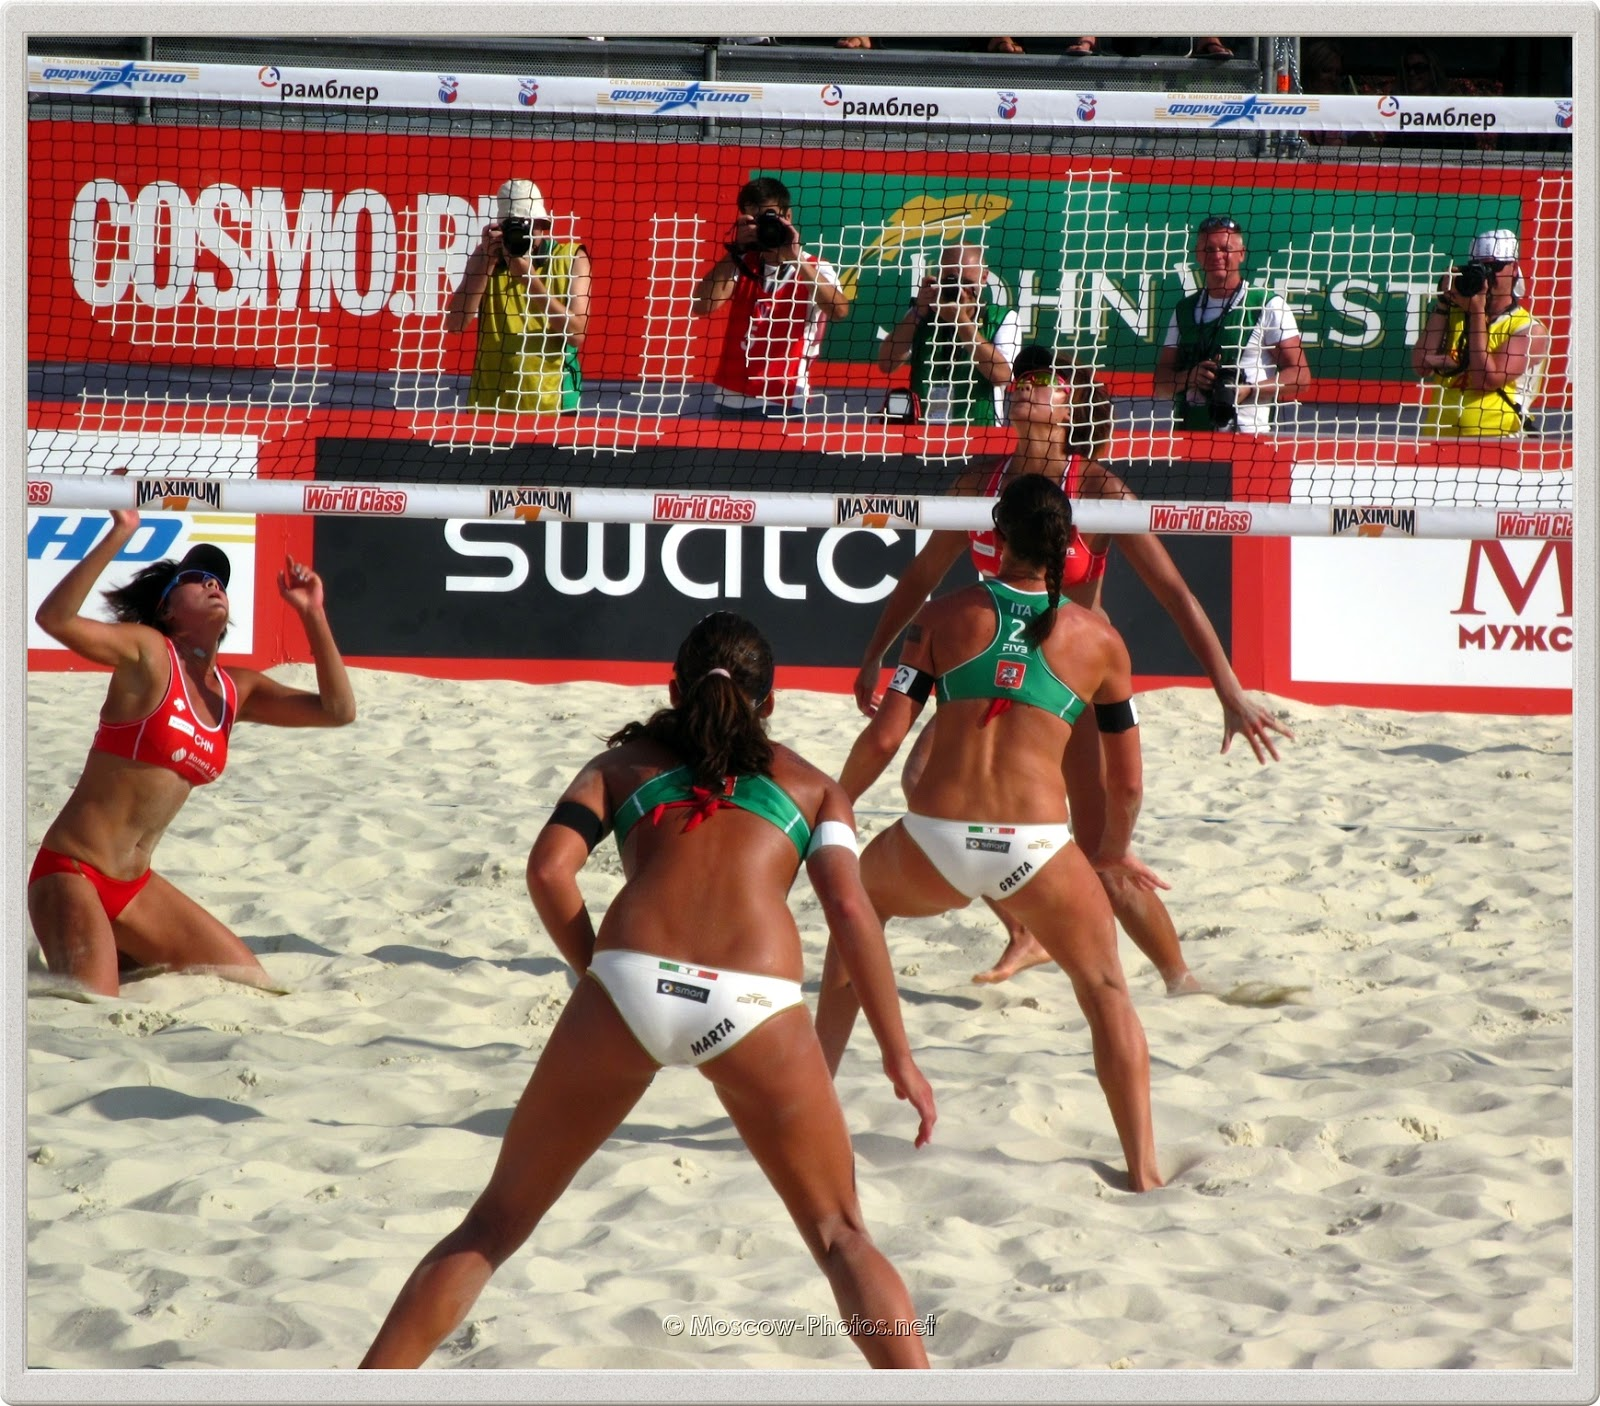 Defensife Formation of Italian Women's Beach Volleyball Team